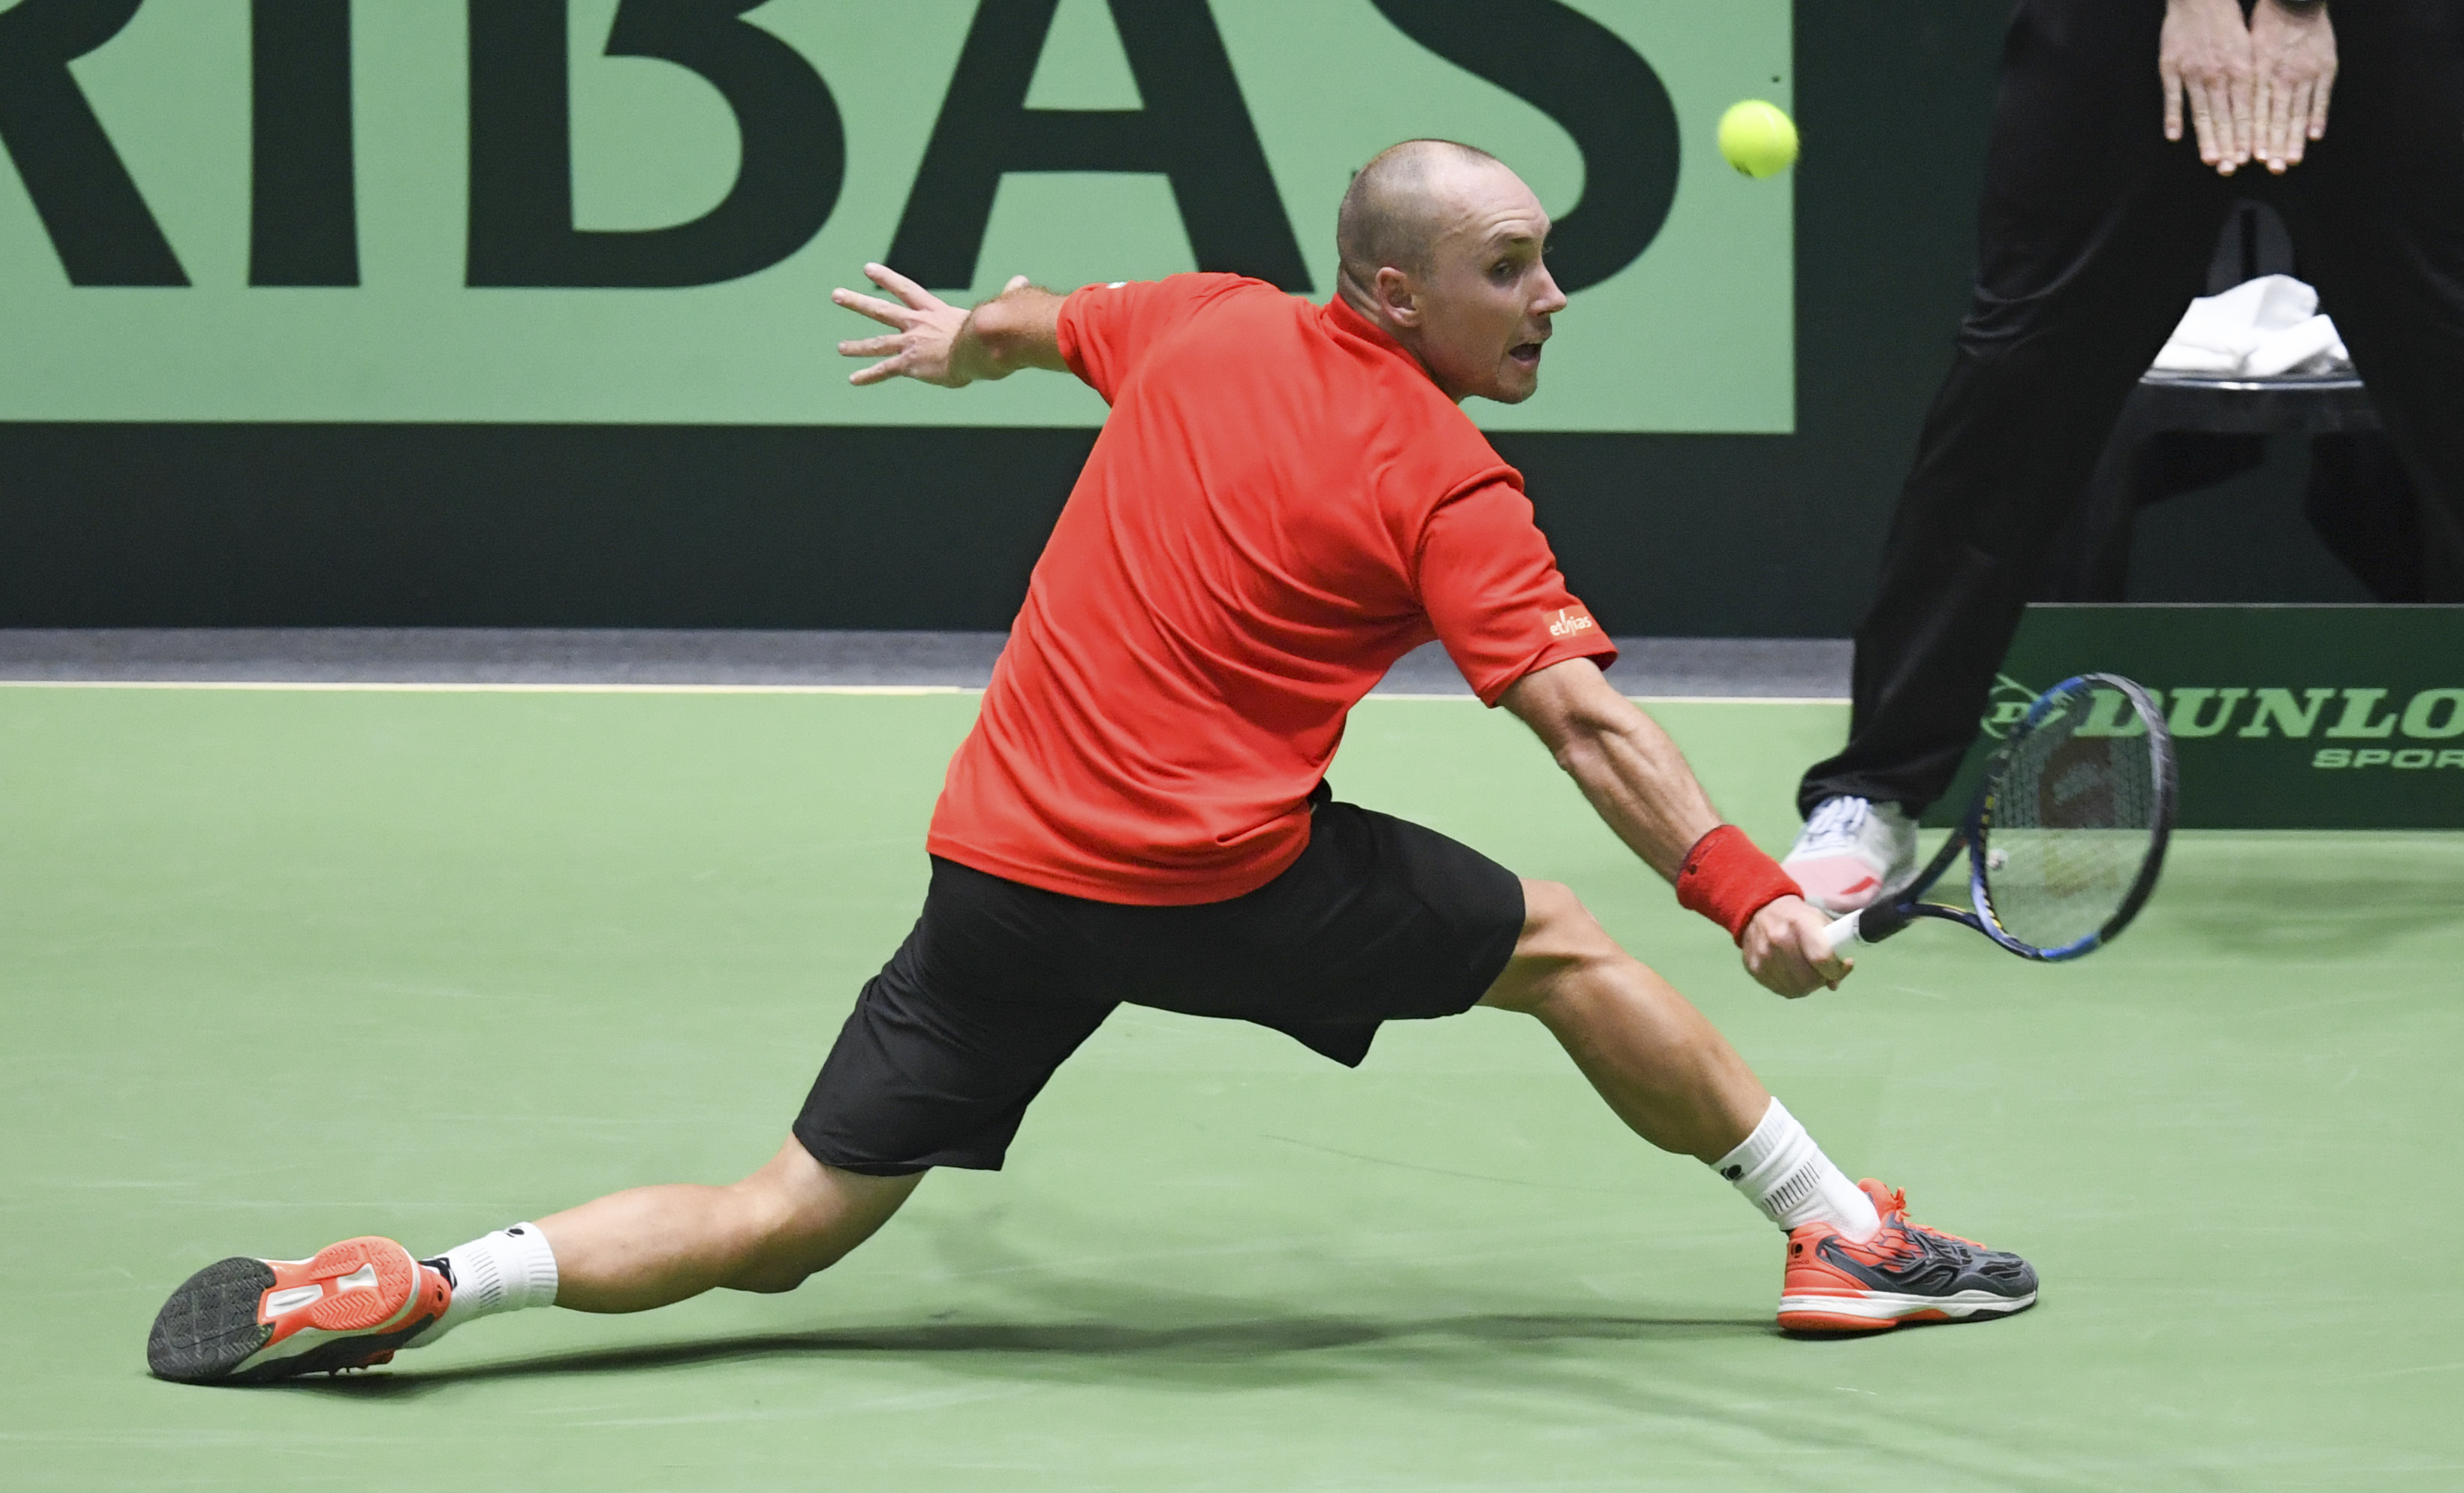 Belgium's Steve Darcis returns a shot to Germany's Philipp Kohlschreiber during a single match of the Davis Cup World Group 1, first round tennis match between Germany and Belgium,  in Frankfurt, Germany, Friday, Feb. 3, 2017.   (Arne Dedert/dpa via AP)